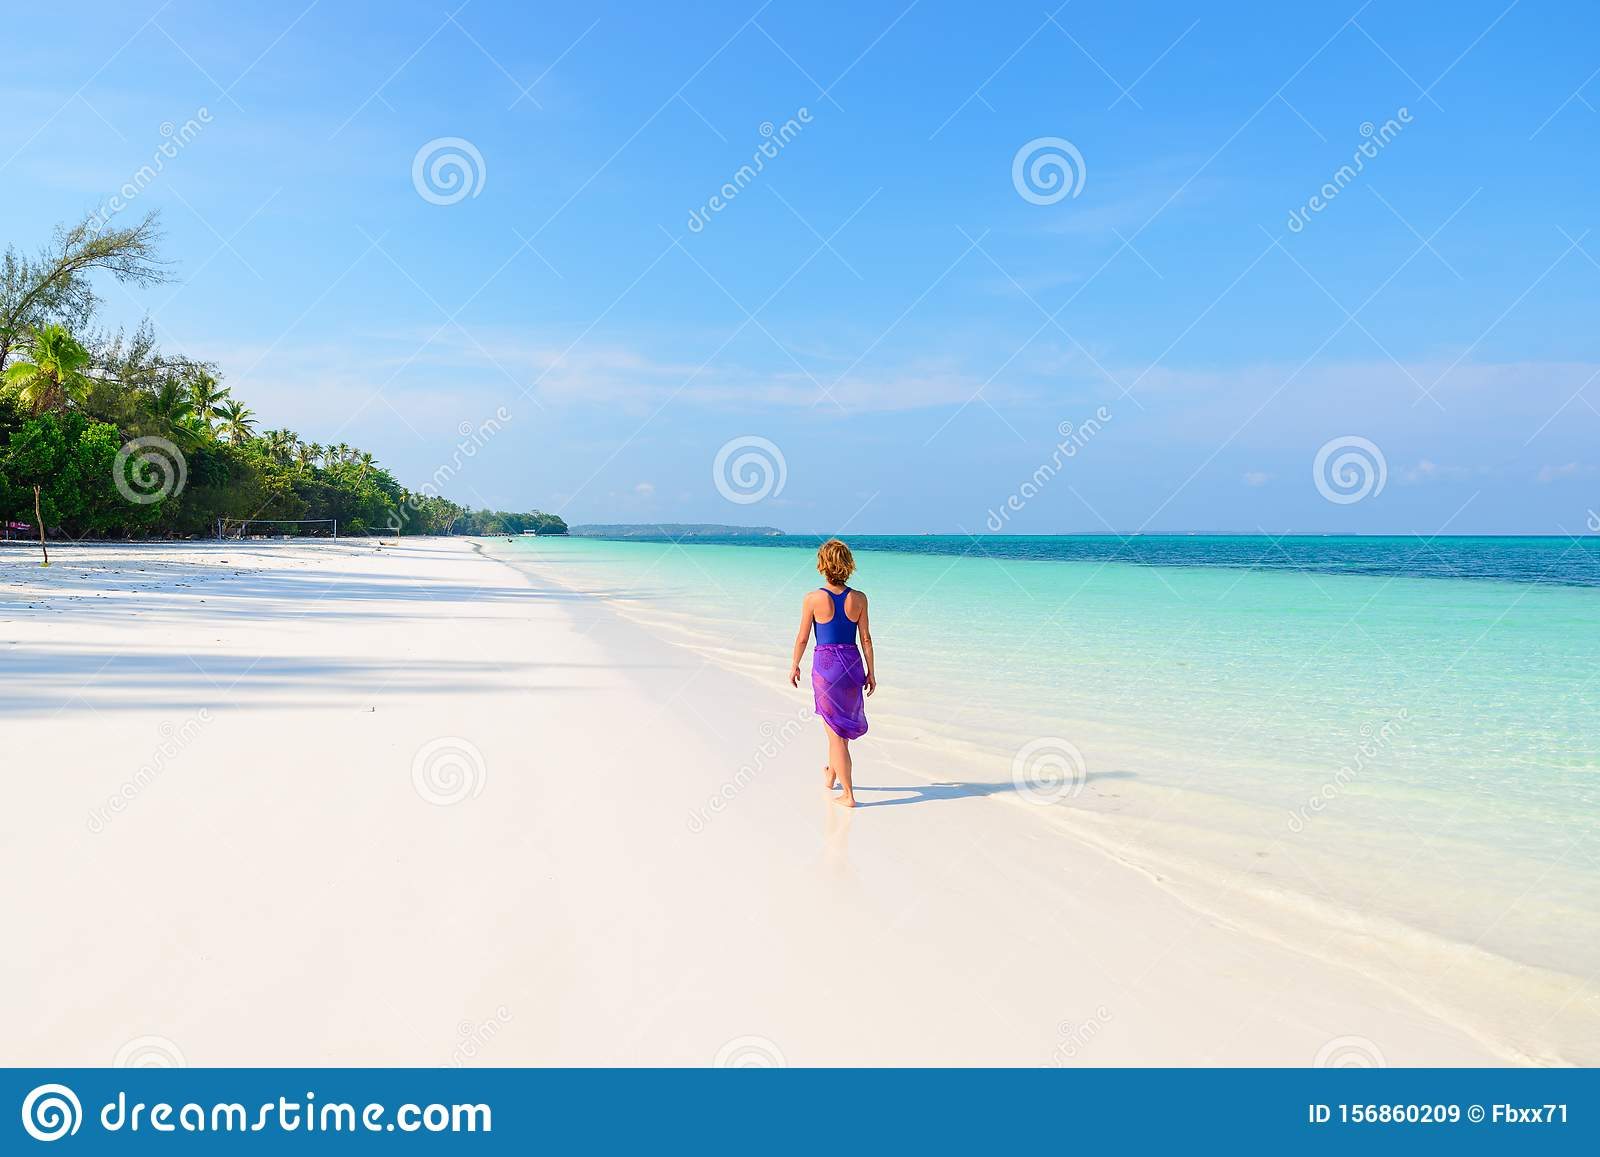 Woman walking on tropical beach. Rear view white sand beach turquoise trasparent water caribbean sea real people. Indonesia Kei